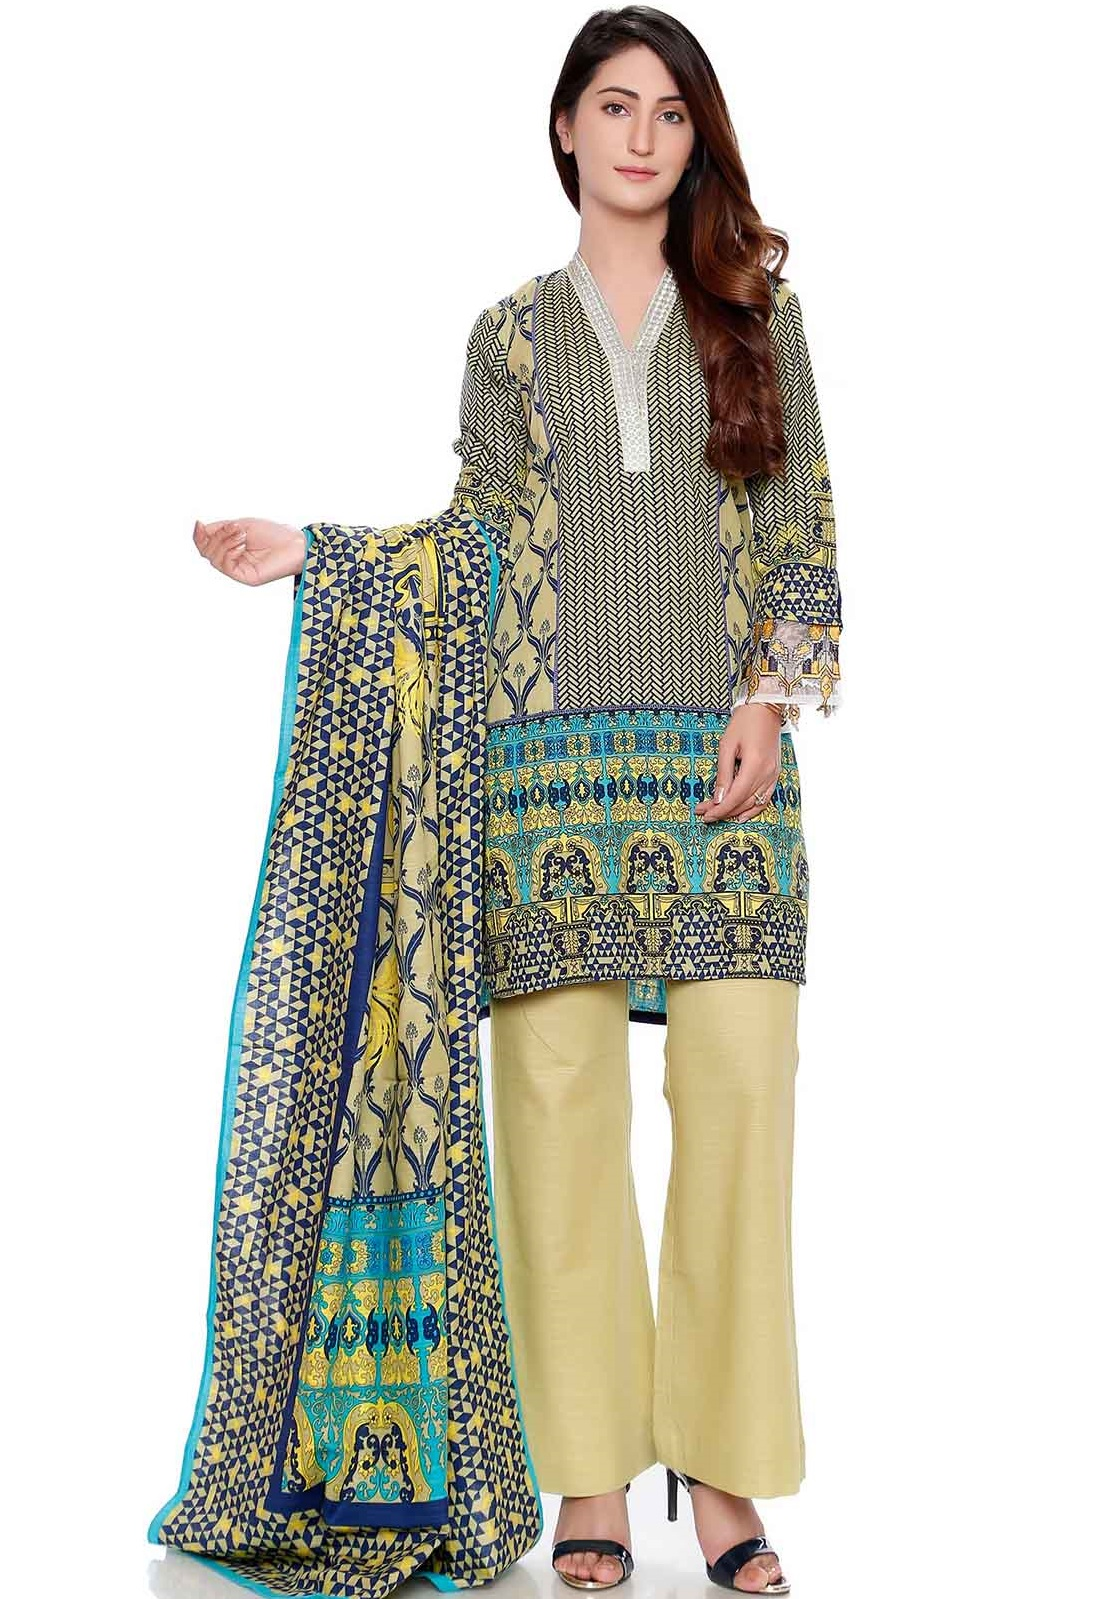 Warda 3-piece embroidered khaddar suit for winter